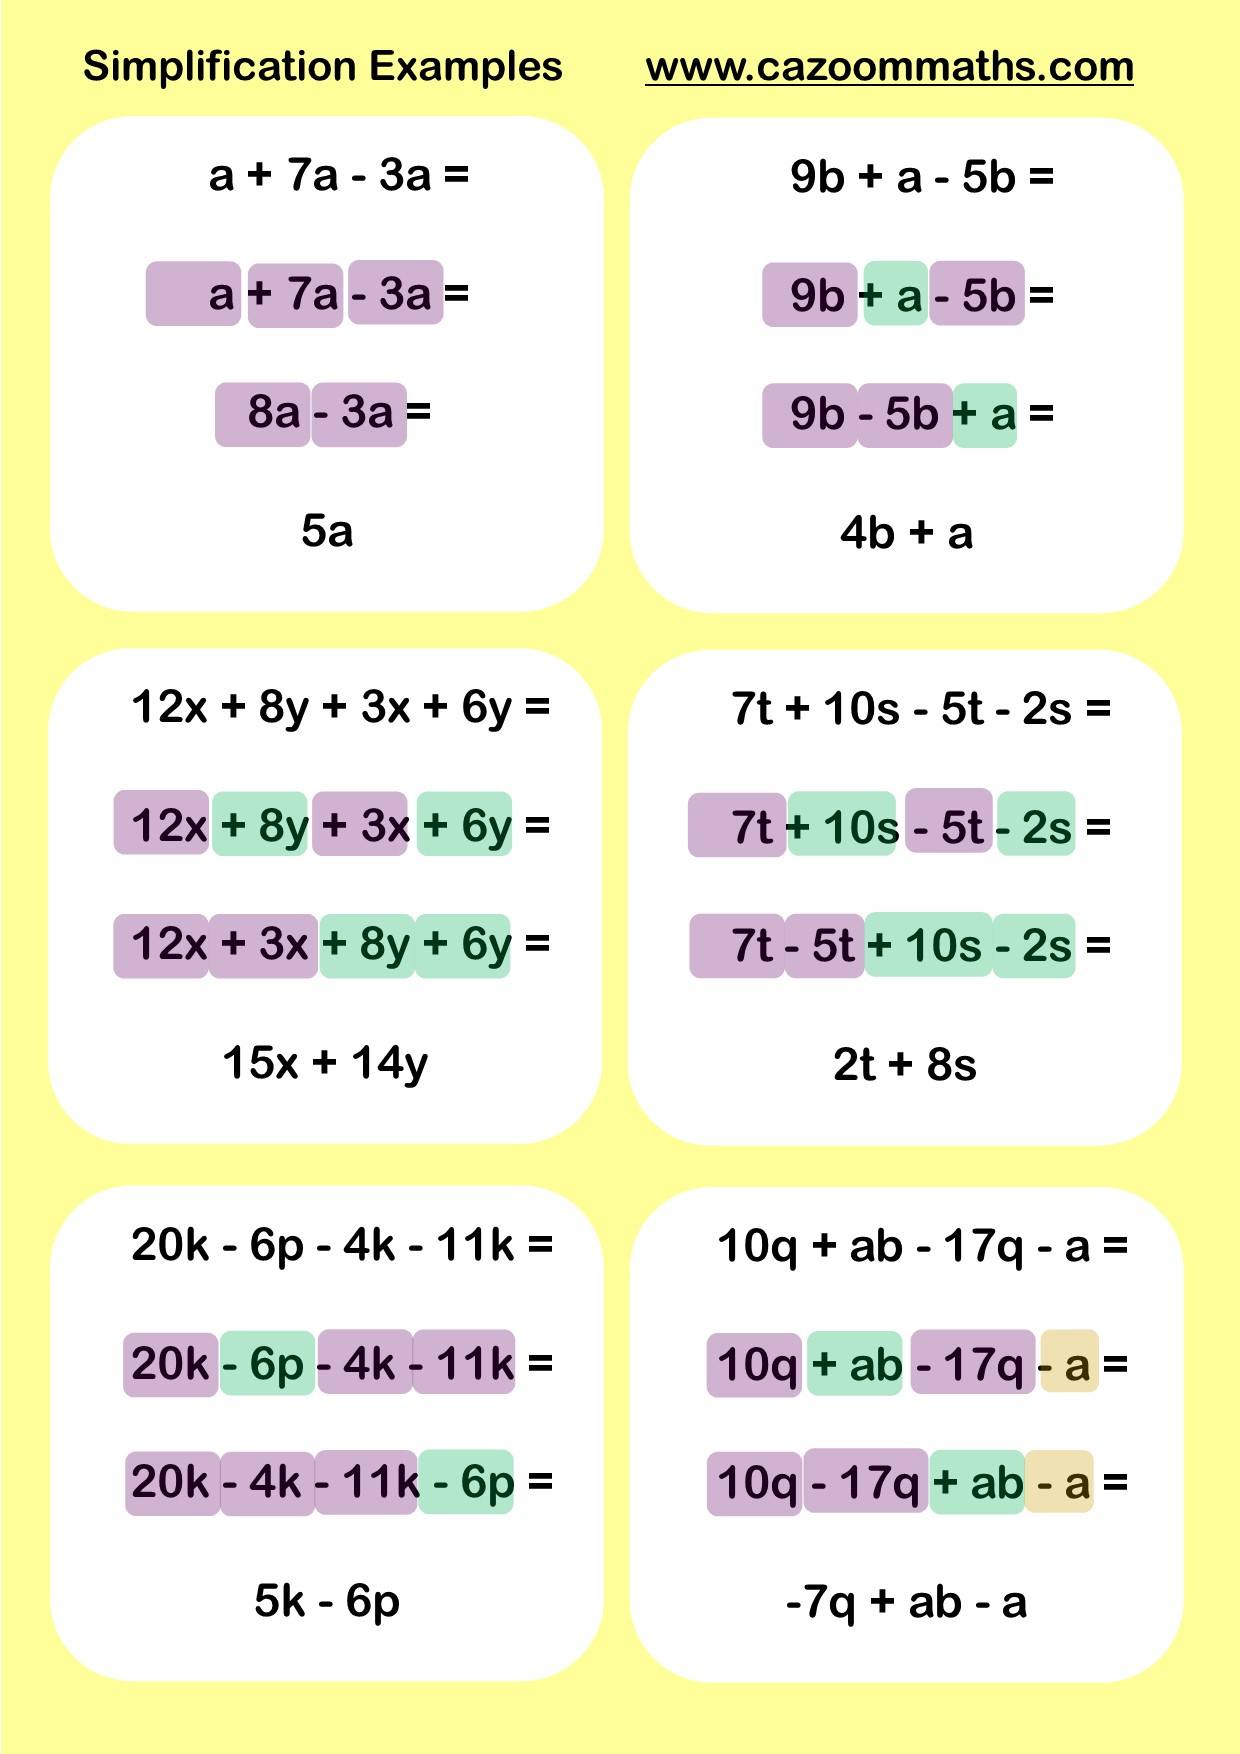 Simplification Maths Worksheets | Cazoom Maths Worksheets